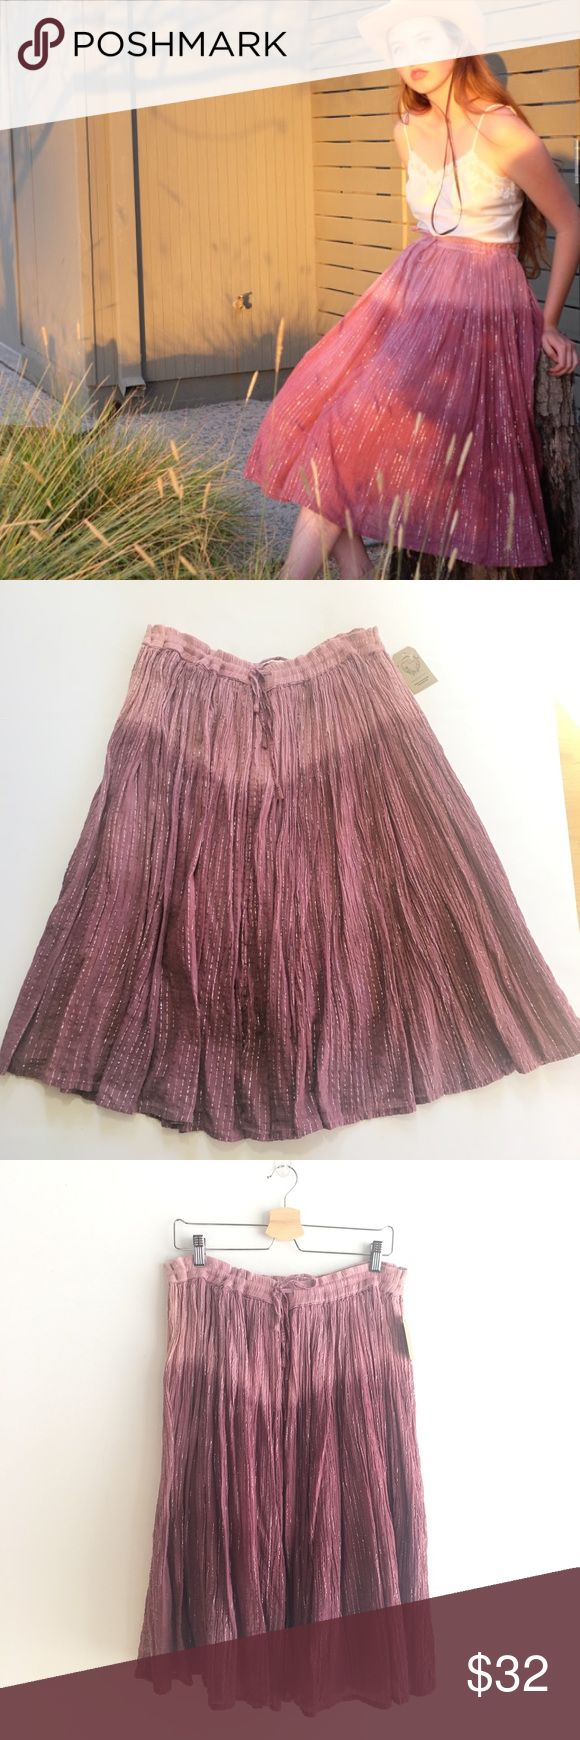 Vintage Lurex Dip Dye Skirt, soft Indian cotton Soft Indian cotton skirt with lurex stripe and beautiful dip dye in dusty pink. On trend in color and style! Drawstring one size fits most, 80s 90s vintage in very good condition. Very Free People bohemian chic without the pricetag. NO low ballers plz. 😉 Vintage Skirts Midi